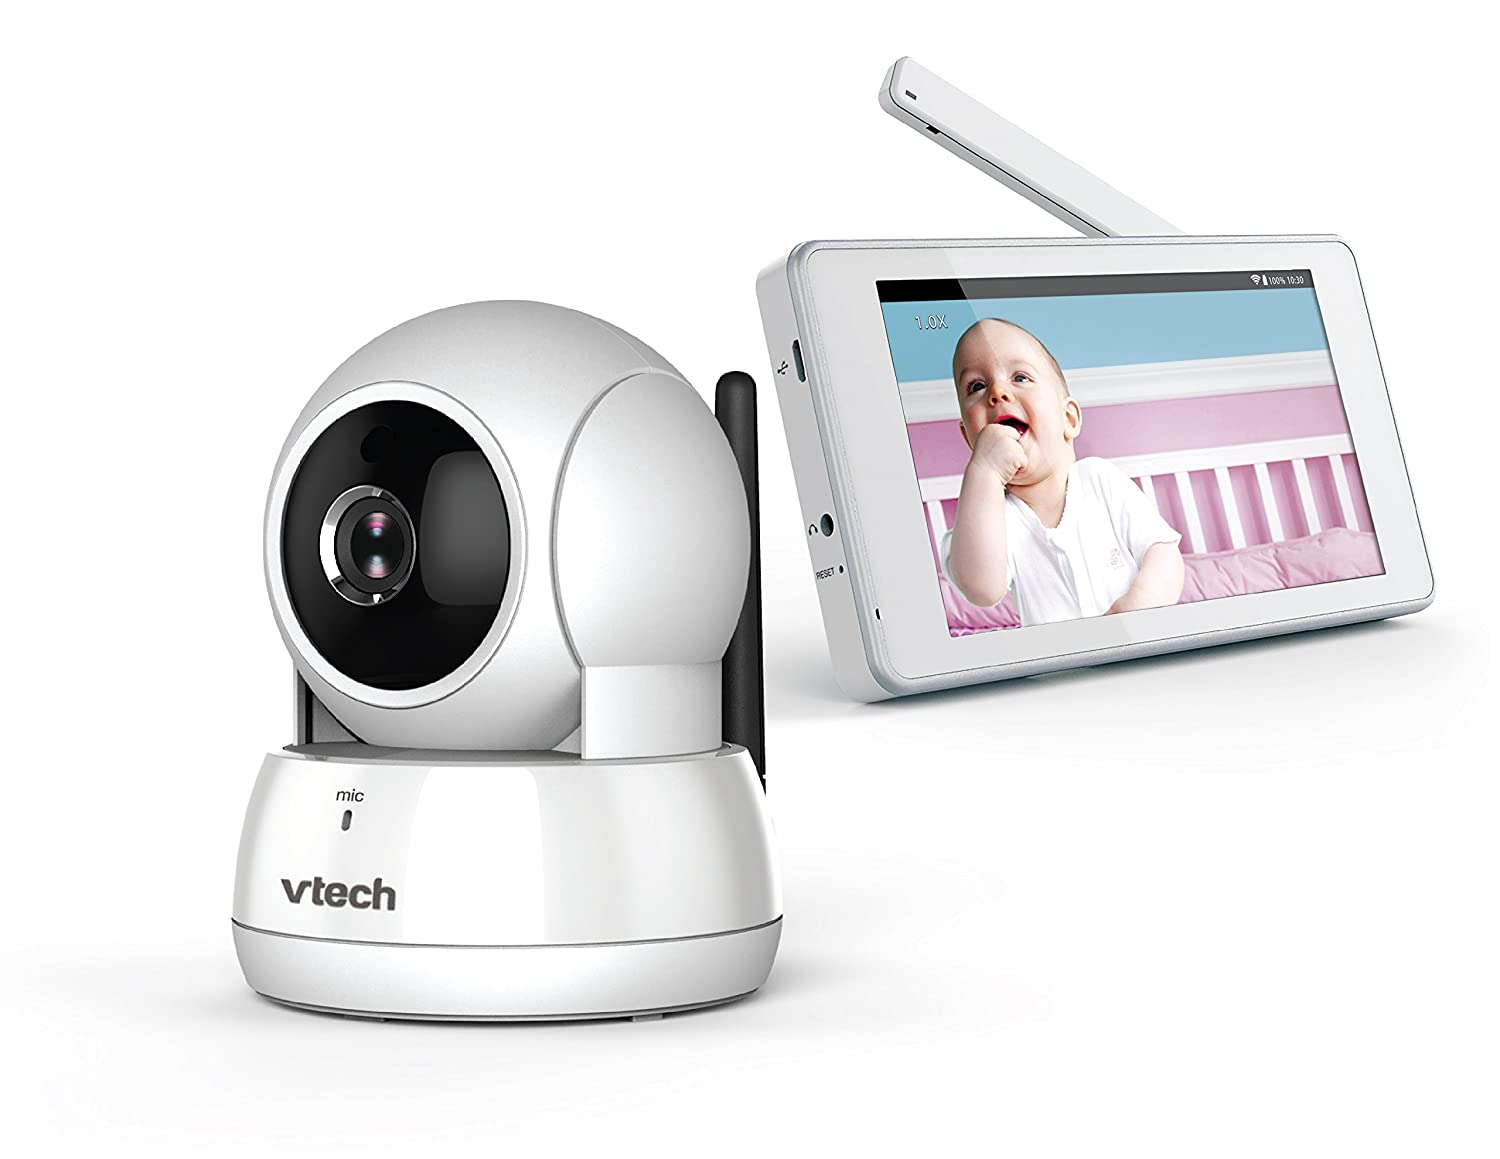 VTech VM991 Expandable HD Video Baby Monitor with Wi-Fi and Pan & Tilt Camera, White, One Size